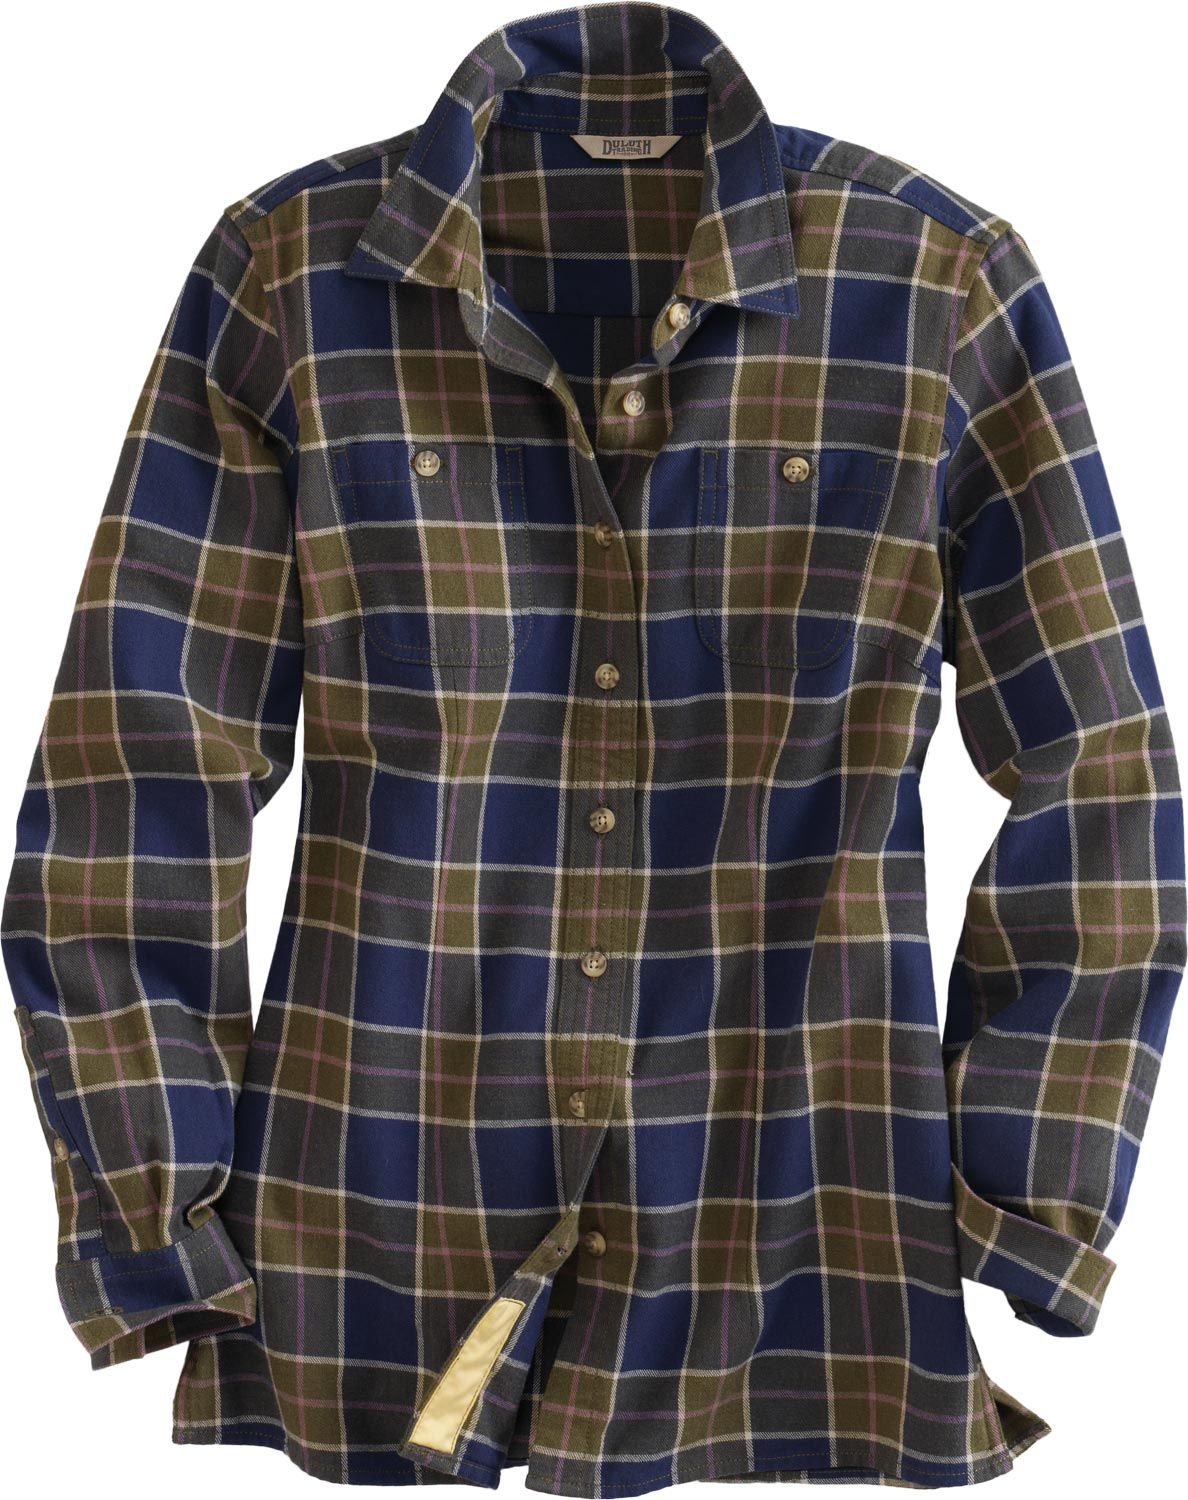 Flannel shirts and shorts  Awesome Flannels  My Style  Pinterest  Flannels Flannel shirts